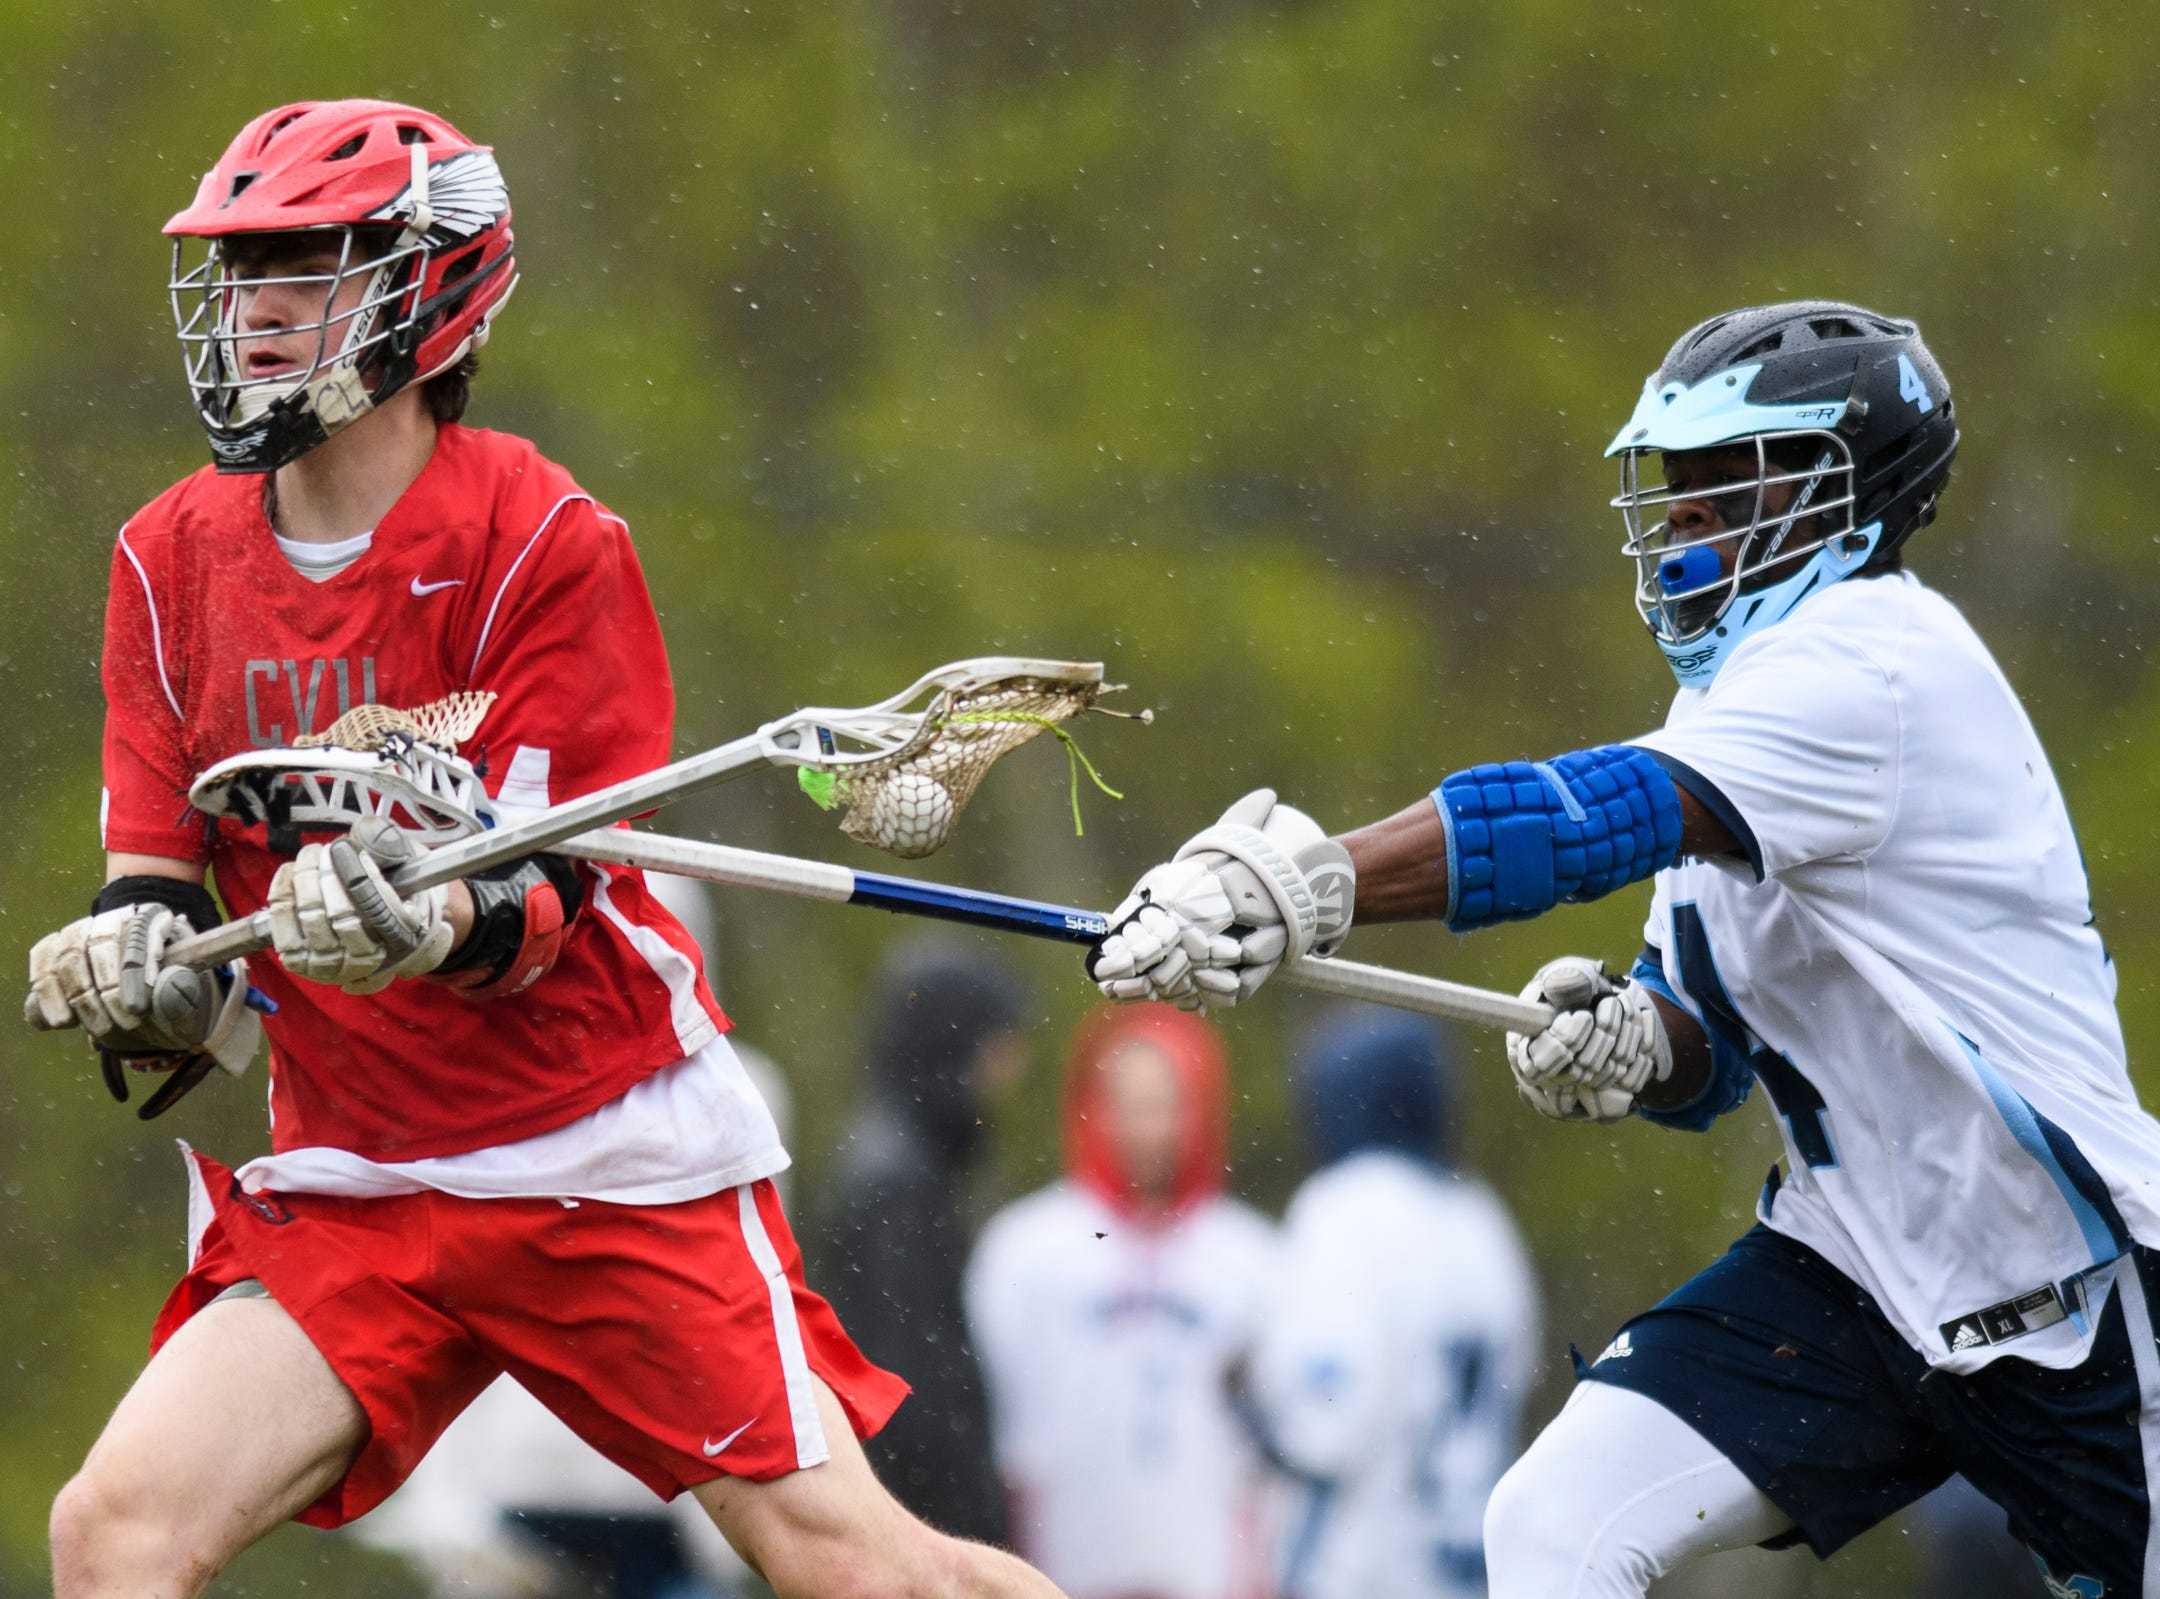 MMU's Jehric Hackney (4) stick checks CVU's Jake Schaefer (5) during the boys lacrosse game between the Champlain Valley Union Redhawks and the Mount Mansfield Cougars at MMU High School on Tuesday afternoon May 14, 2019 in Jericho, Vermont.